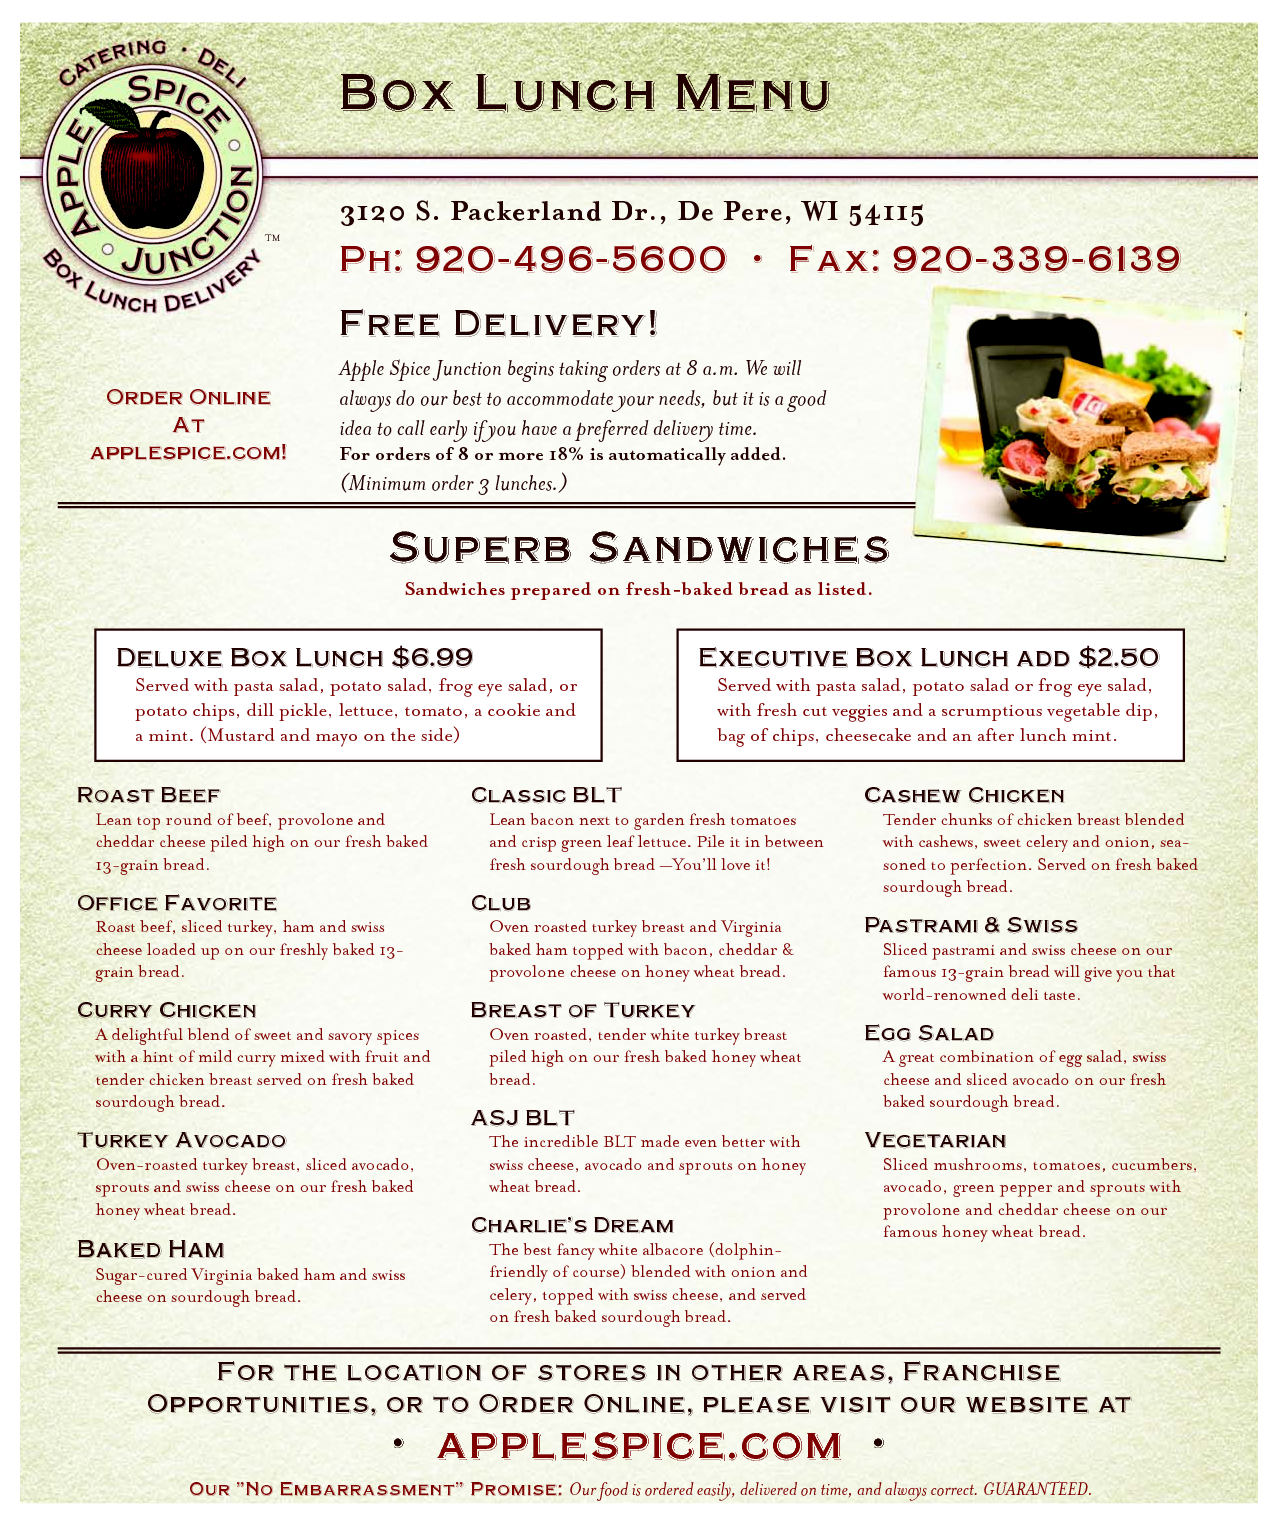 Panera Bread Catering Menu Pdf